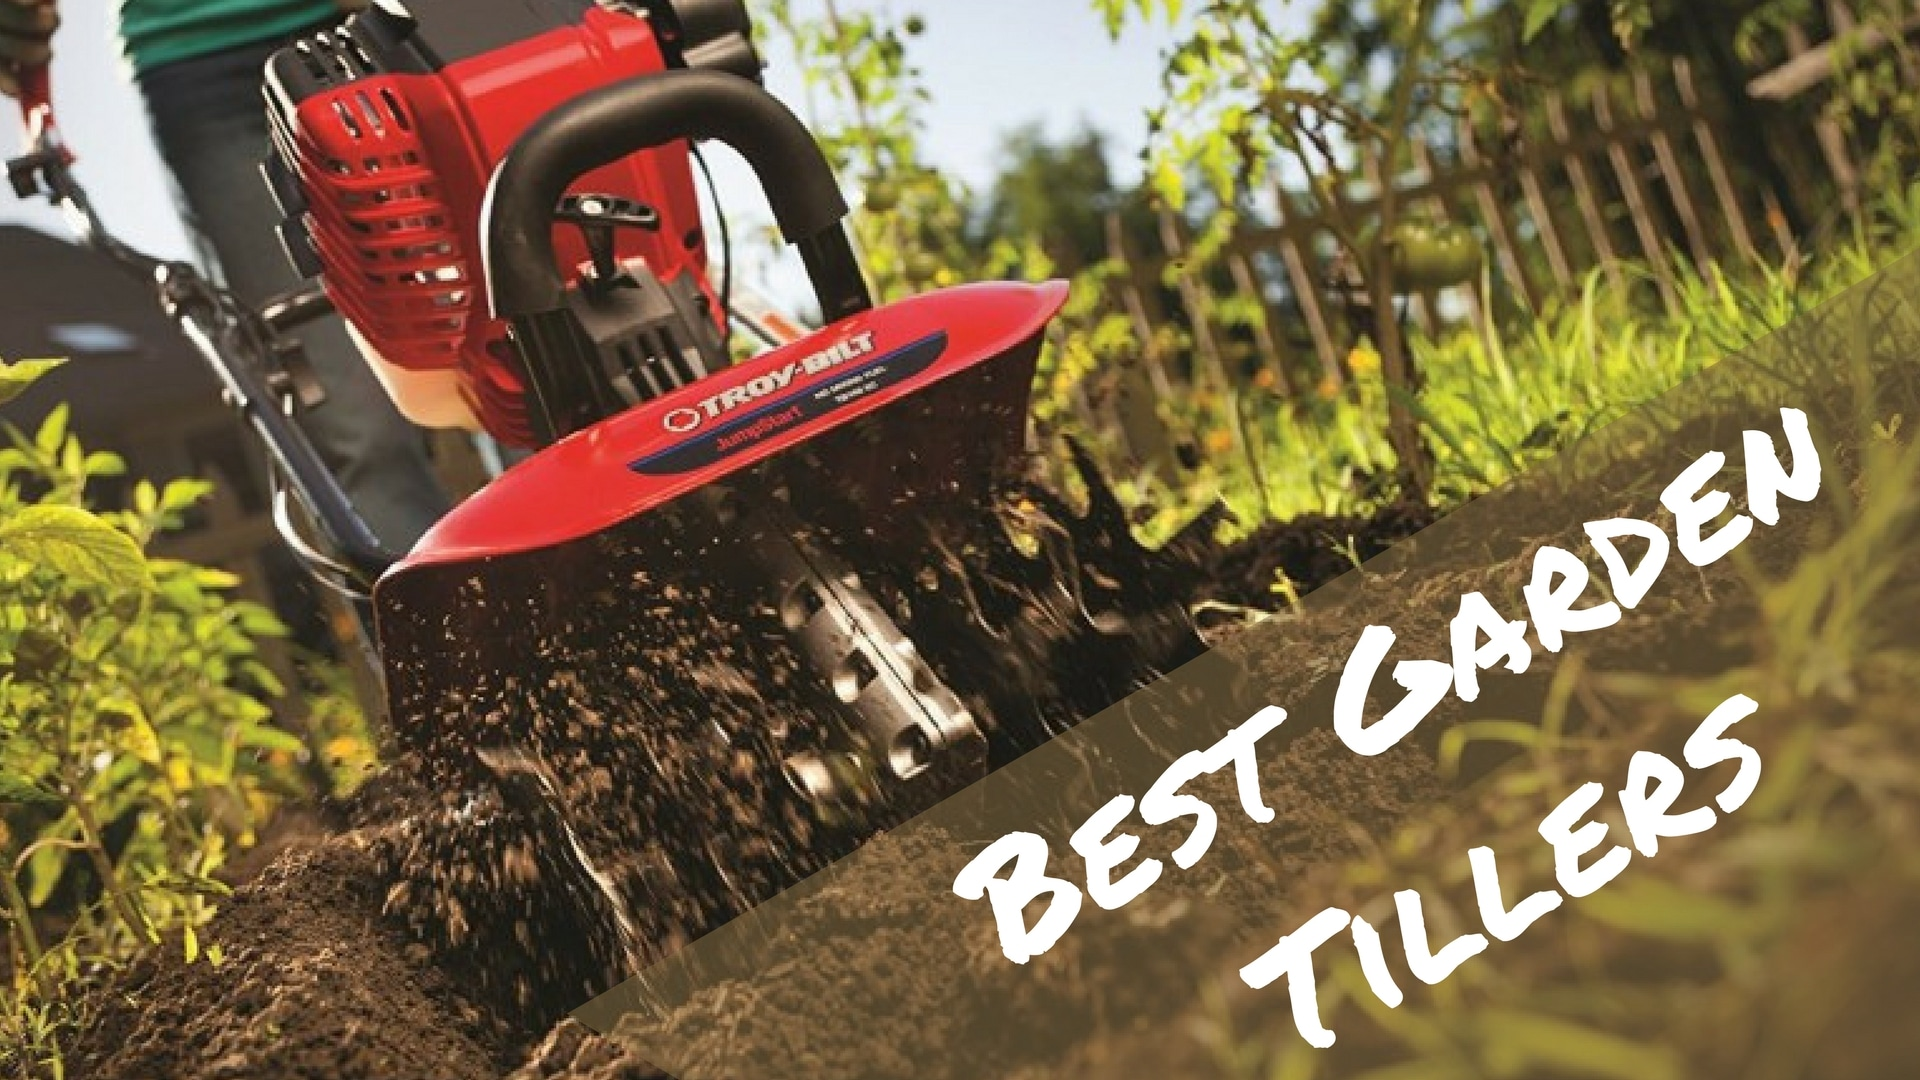 Finding the Best Garden Tiller - Our Top 10 Picks and Reviews